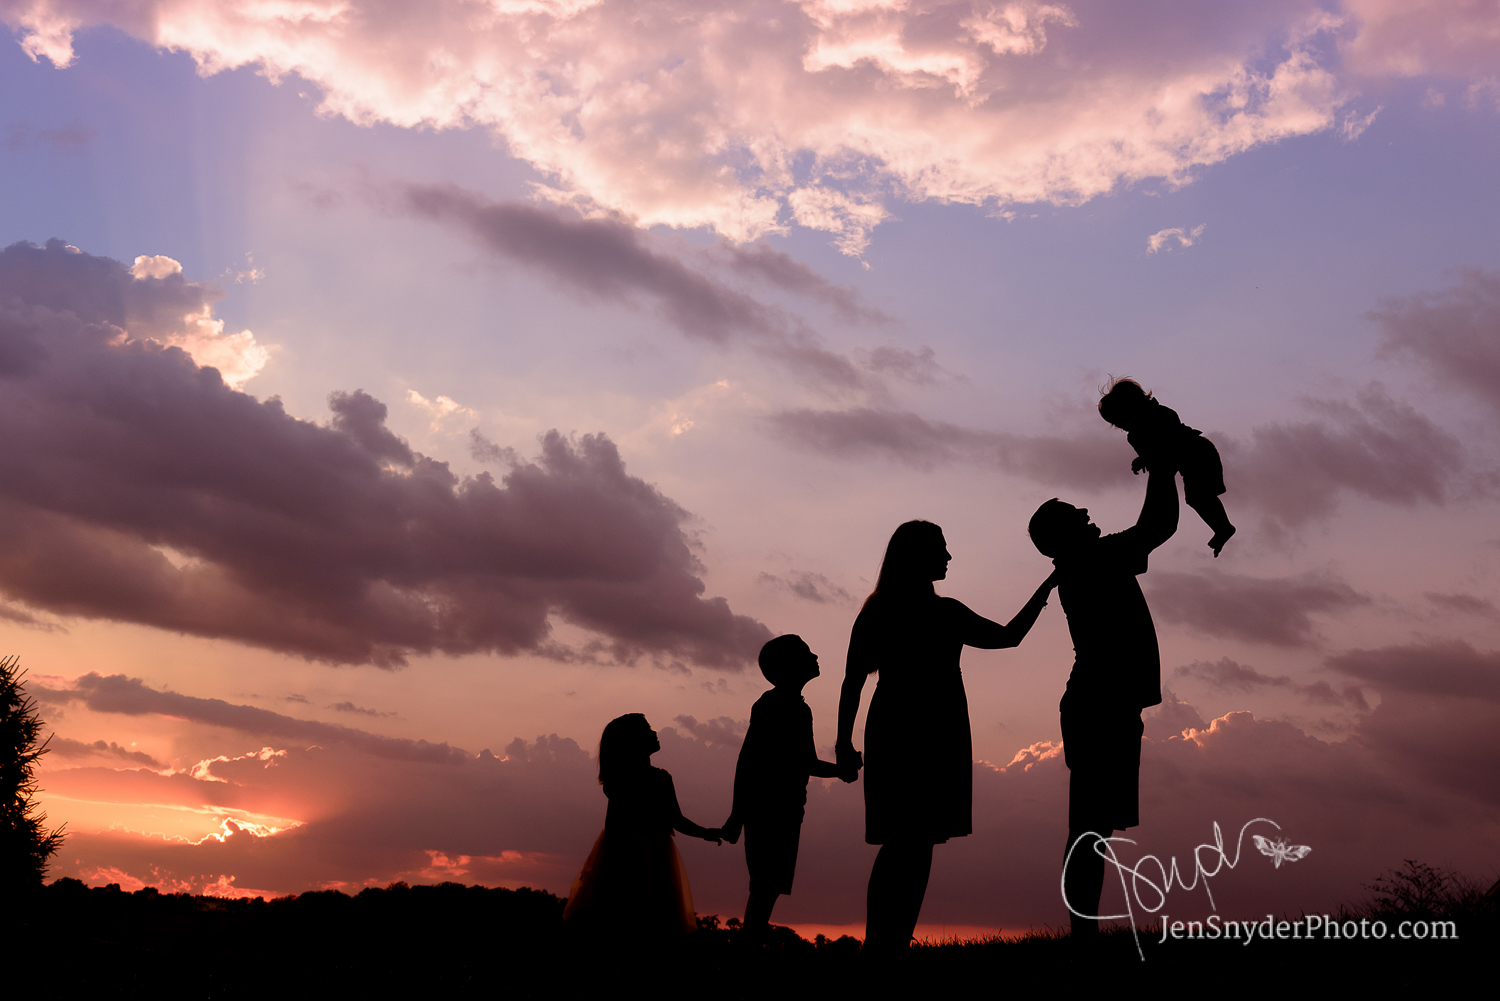 Harford County sunset silhouette family photographer Jen Snyder http://www.jensnyderphoto.com